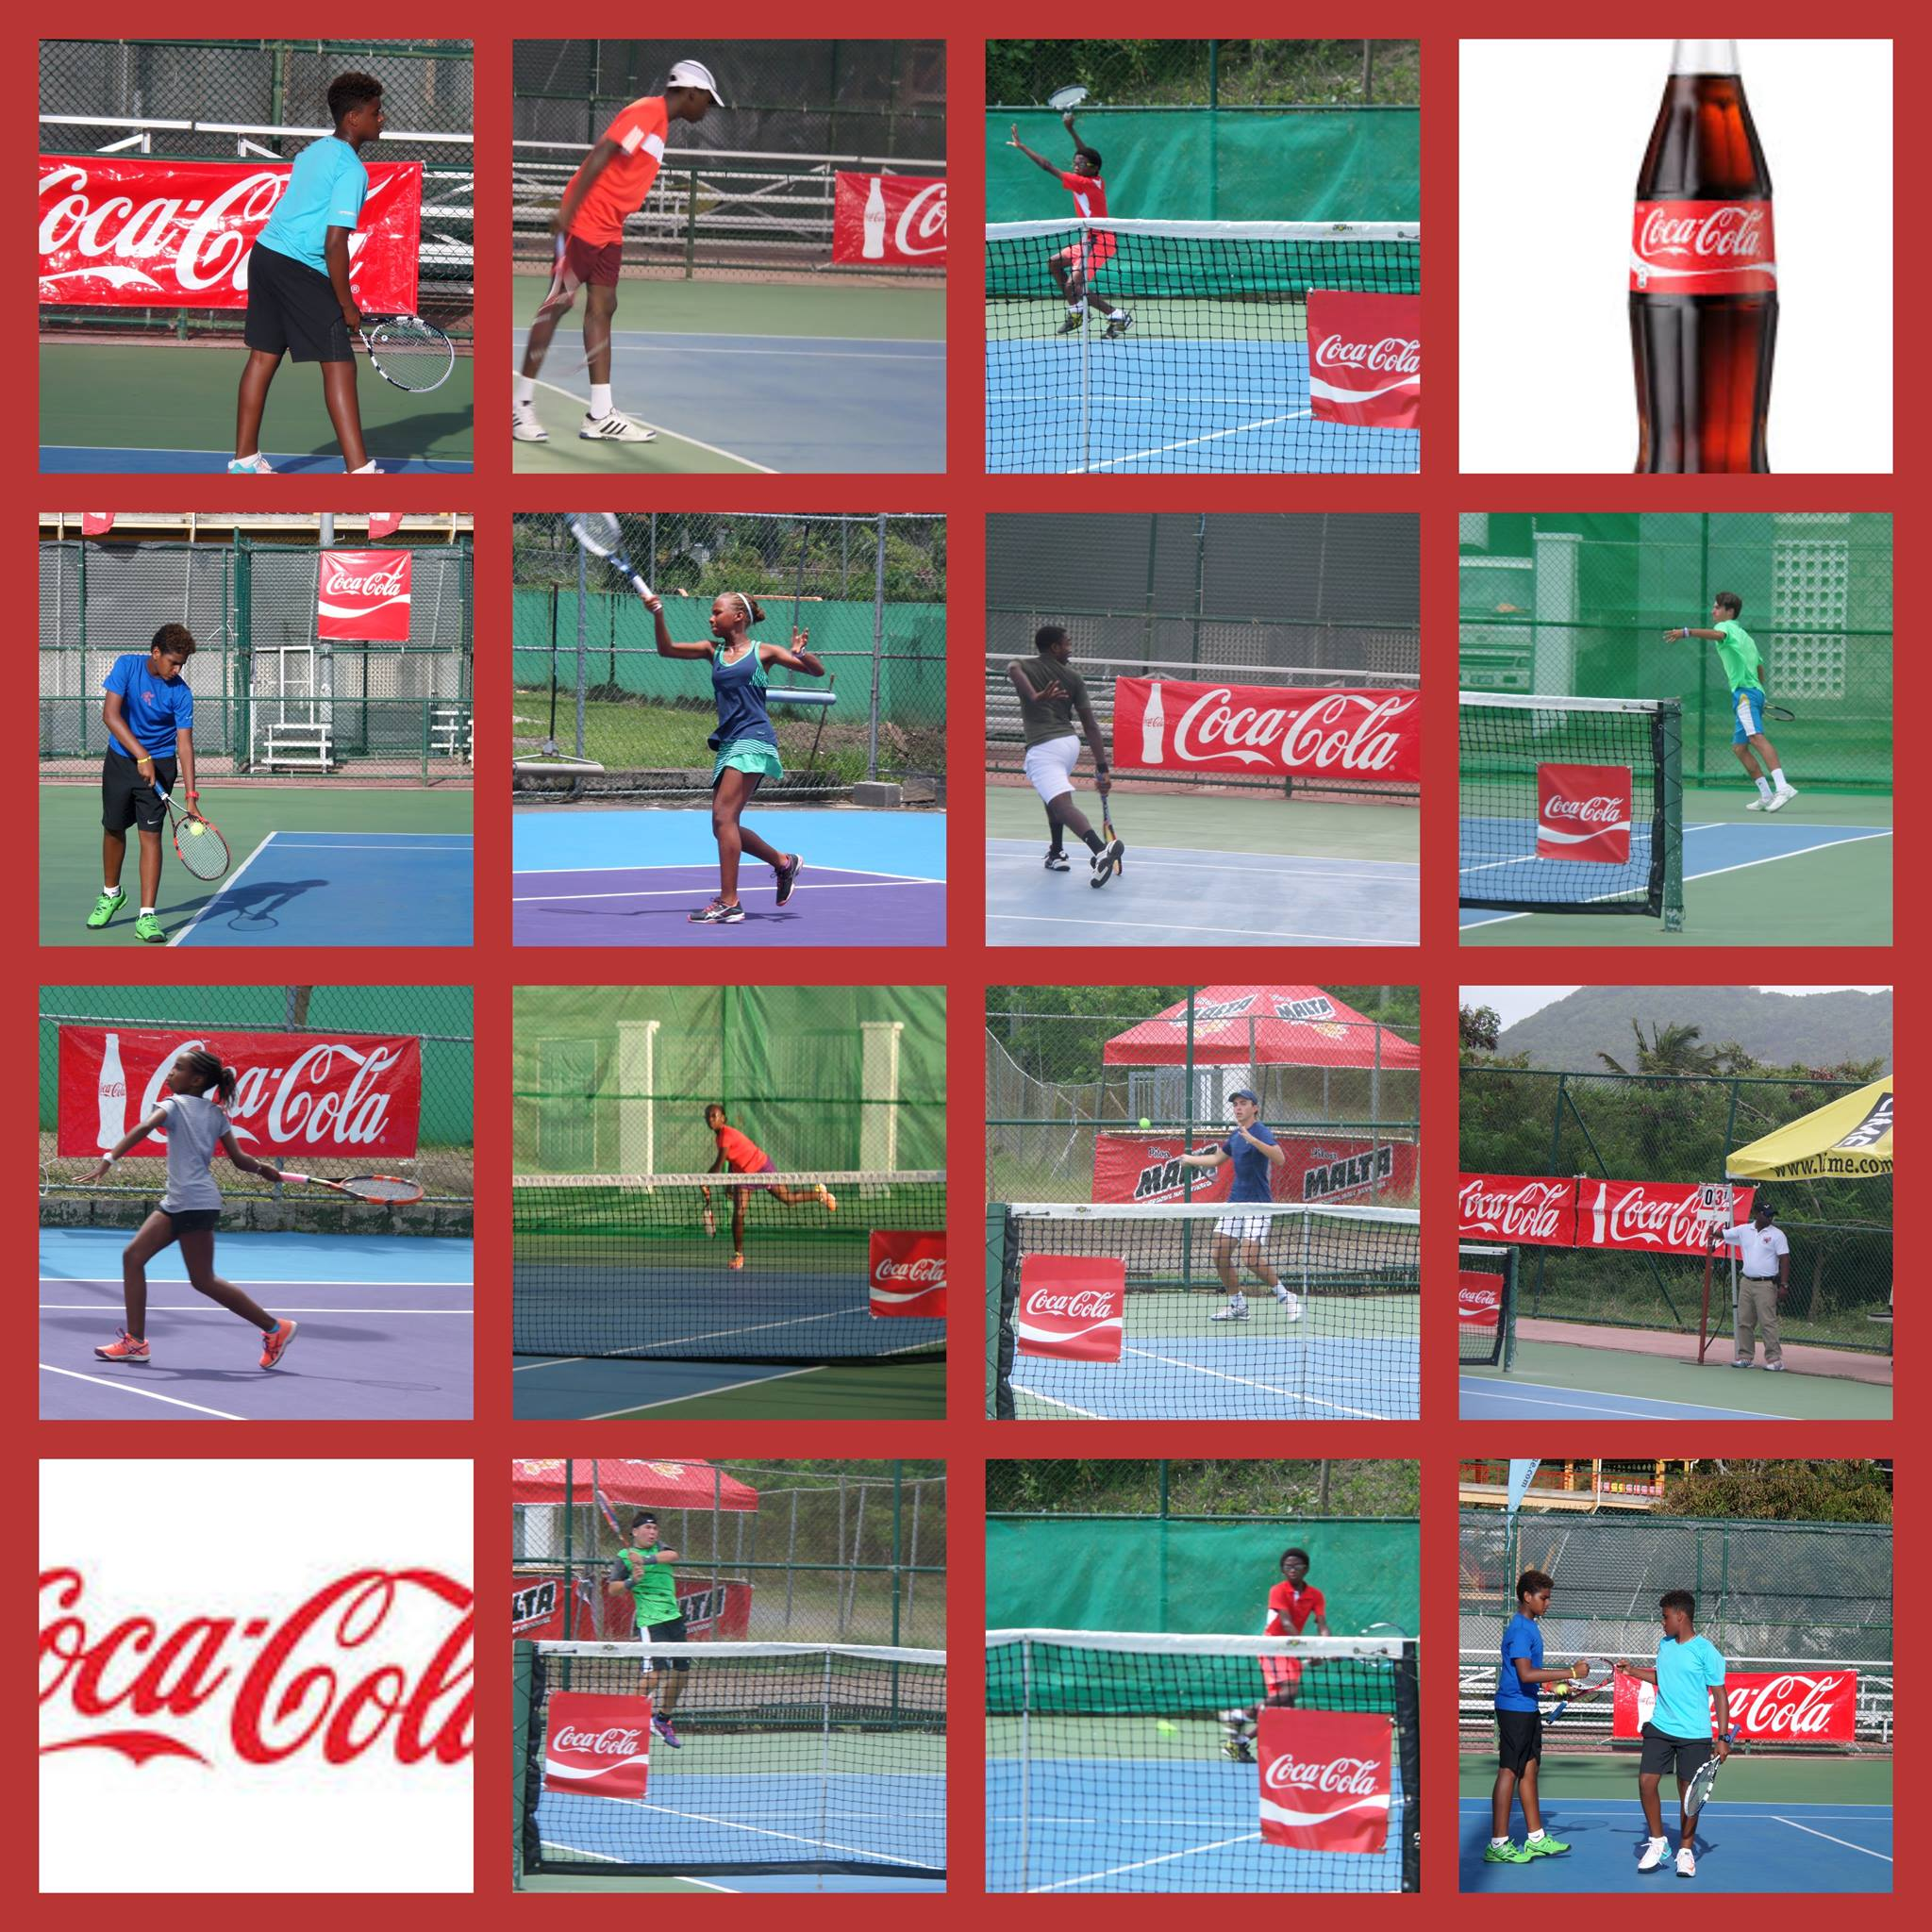 coca cola itf junior tennis tournament